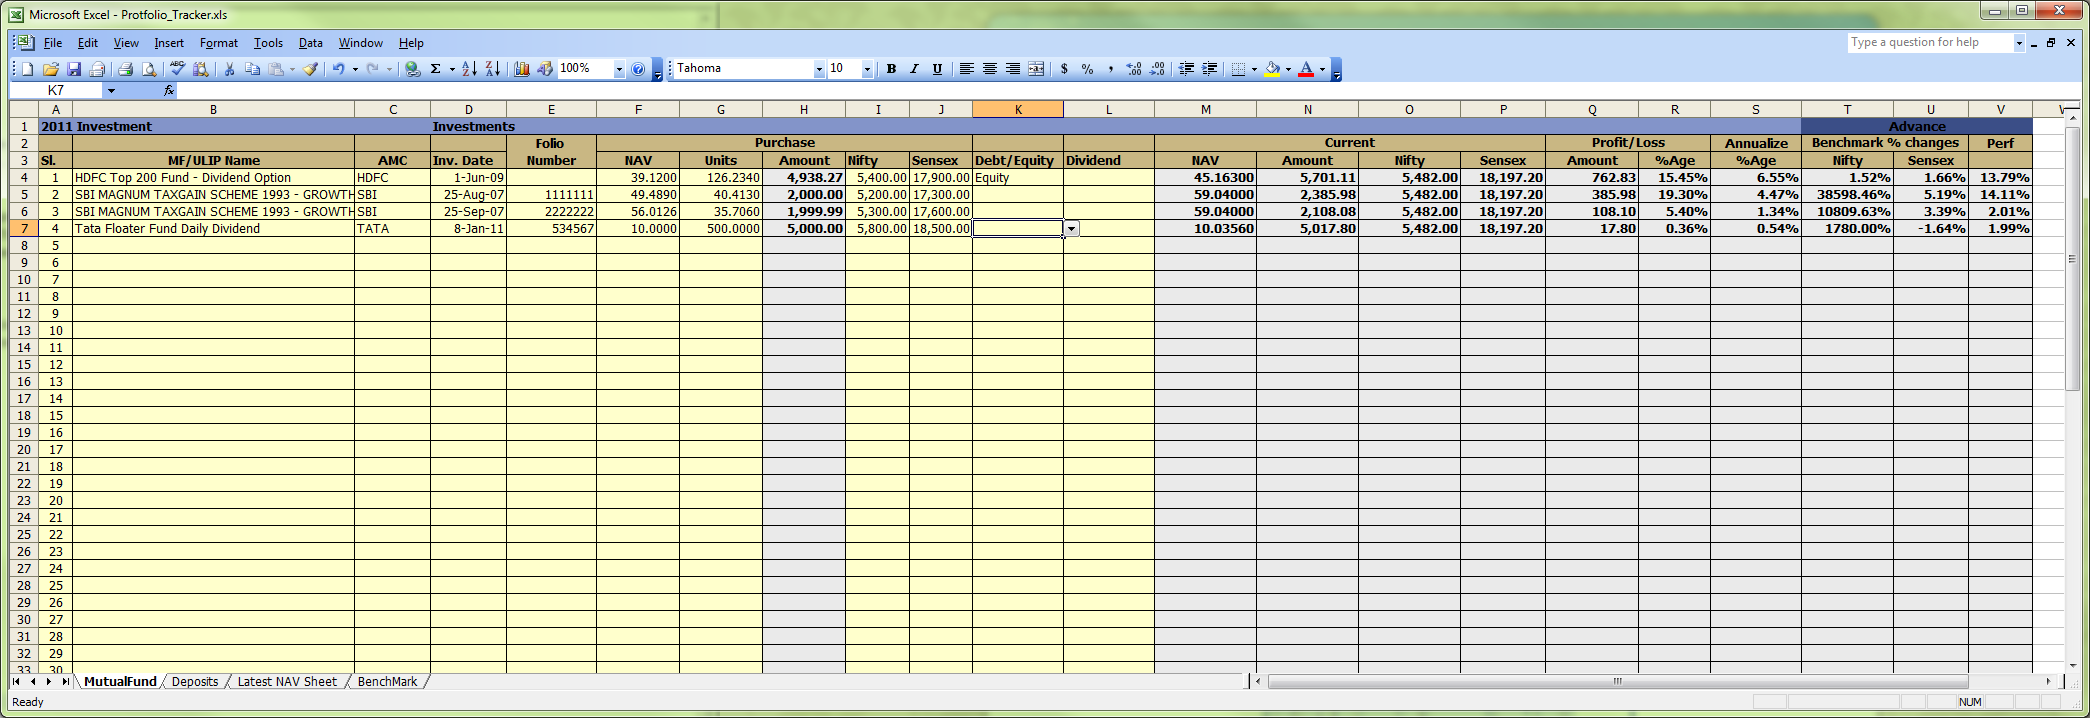 Stock options portfolio spreadsheet